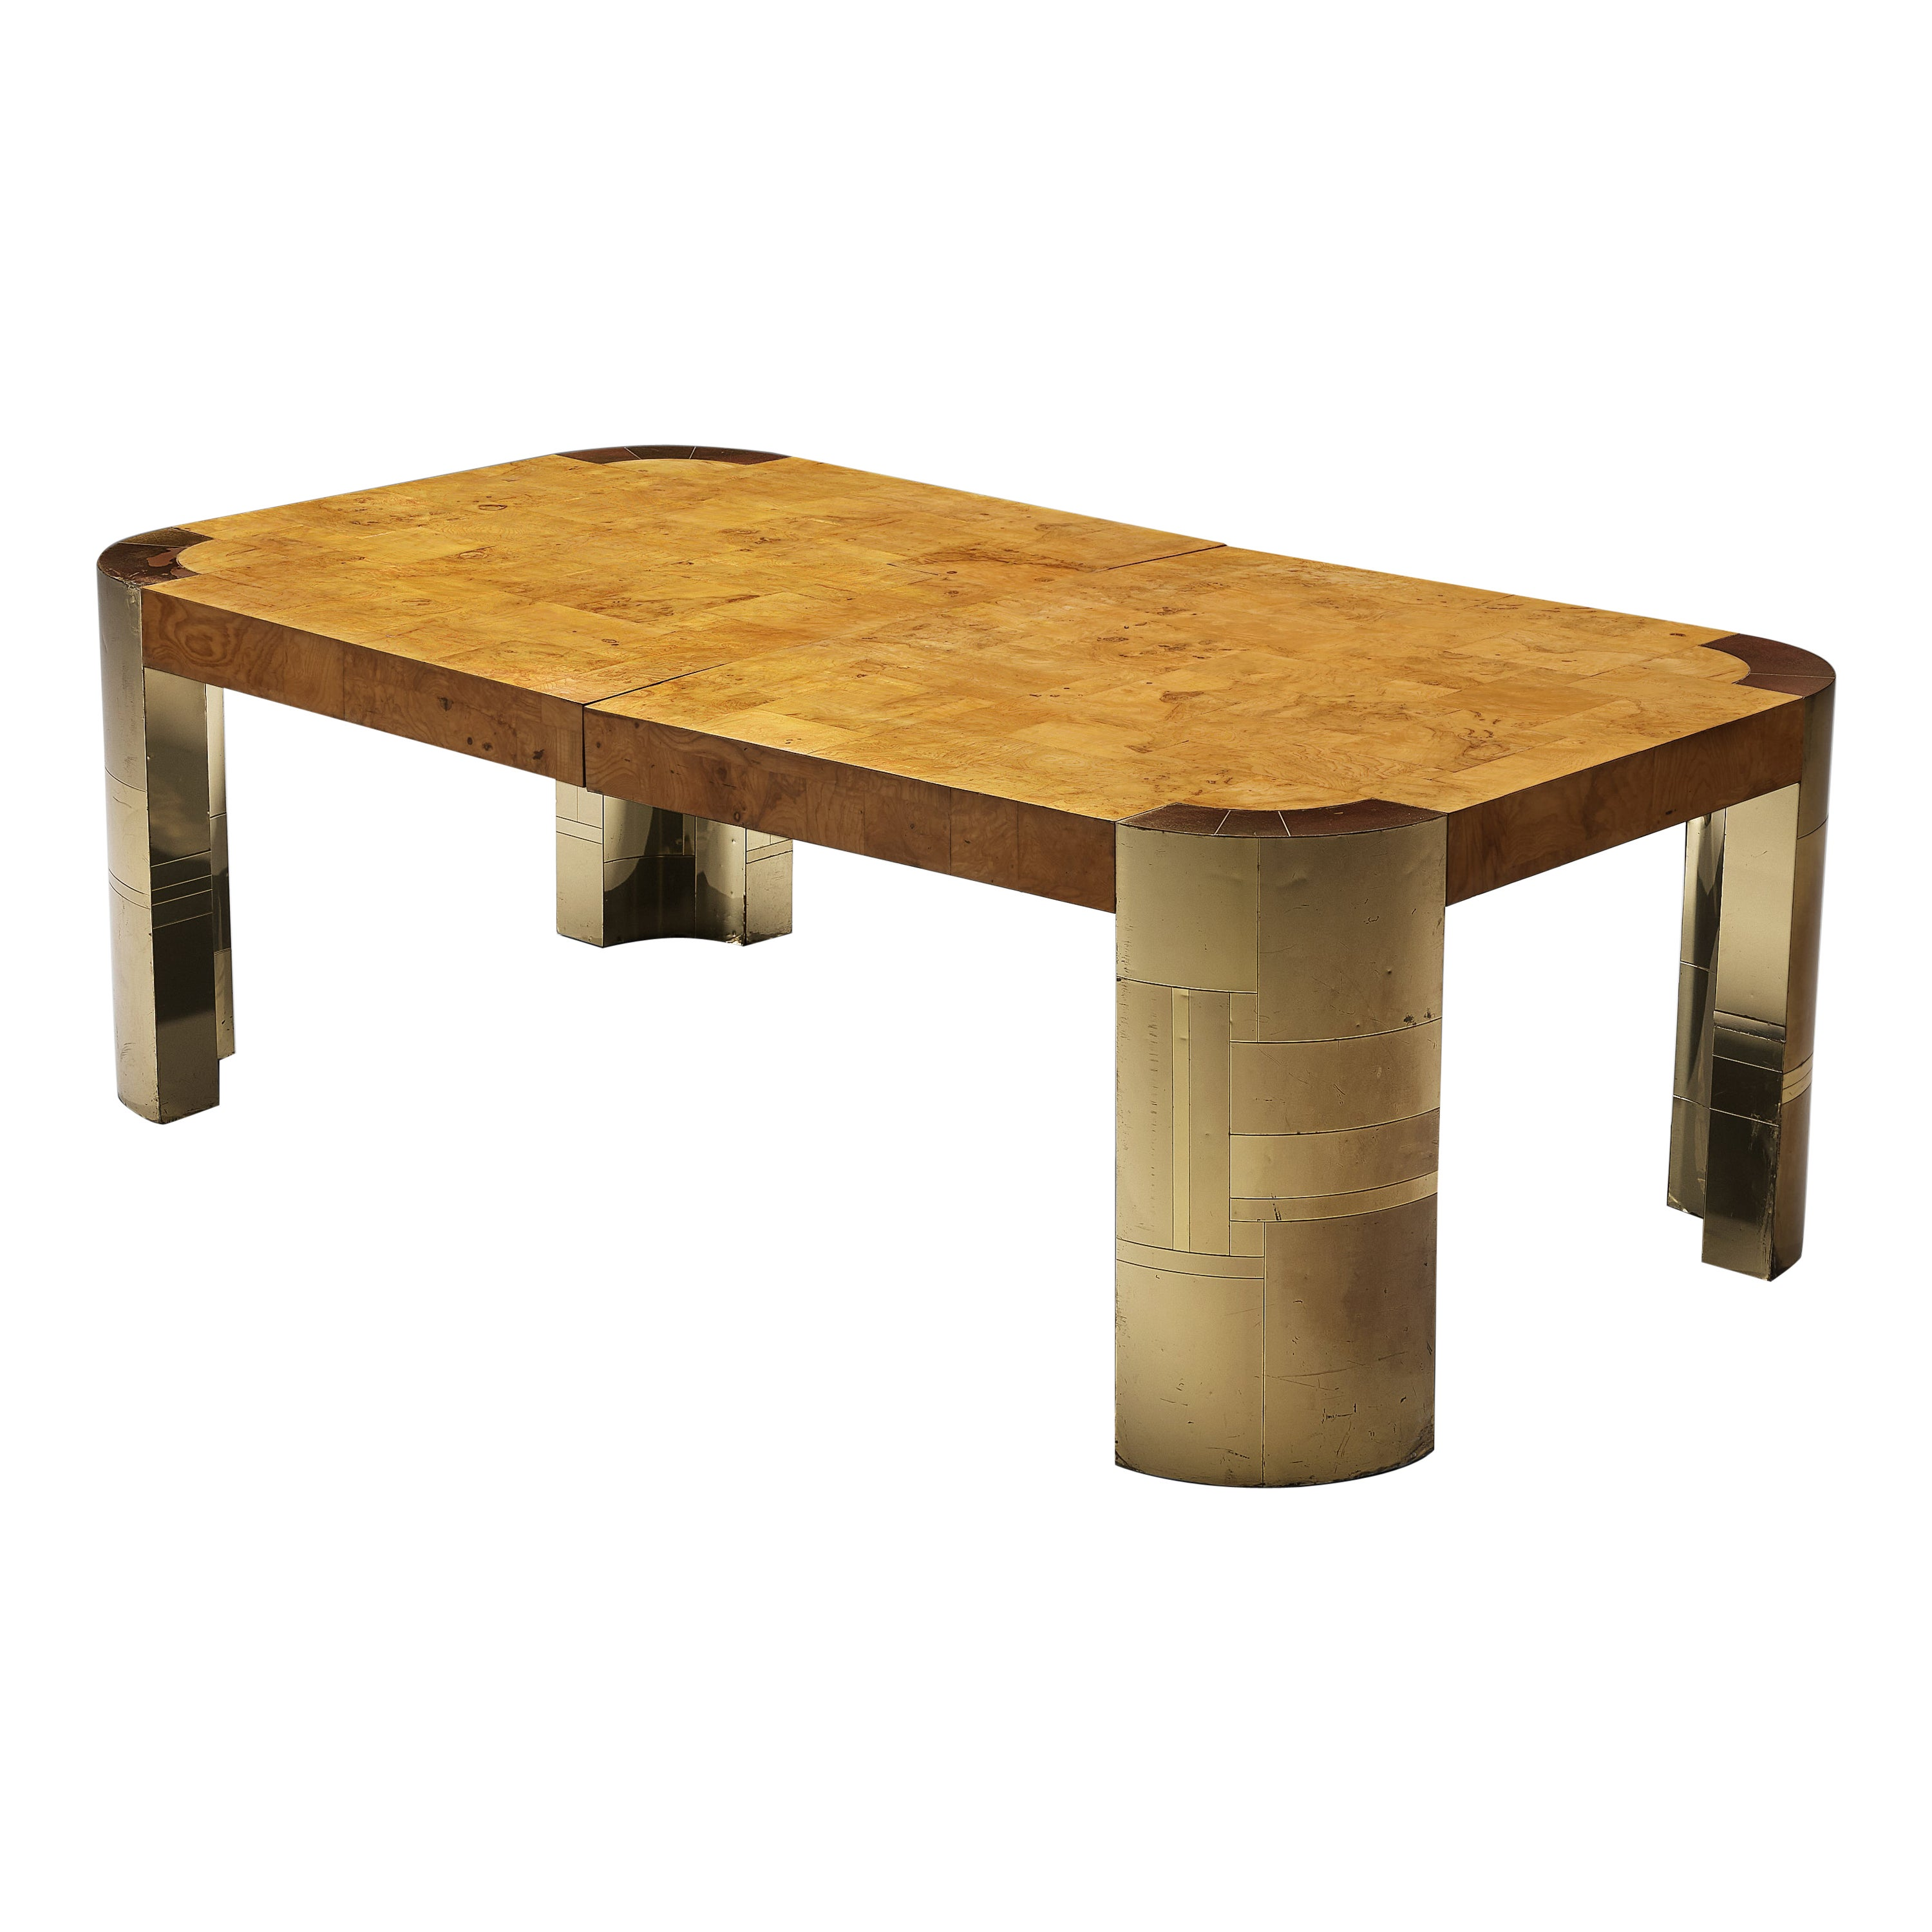 Paul Evans Conference Table in Brass and Wood Burl